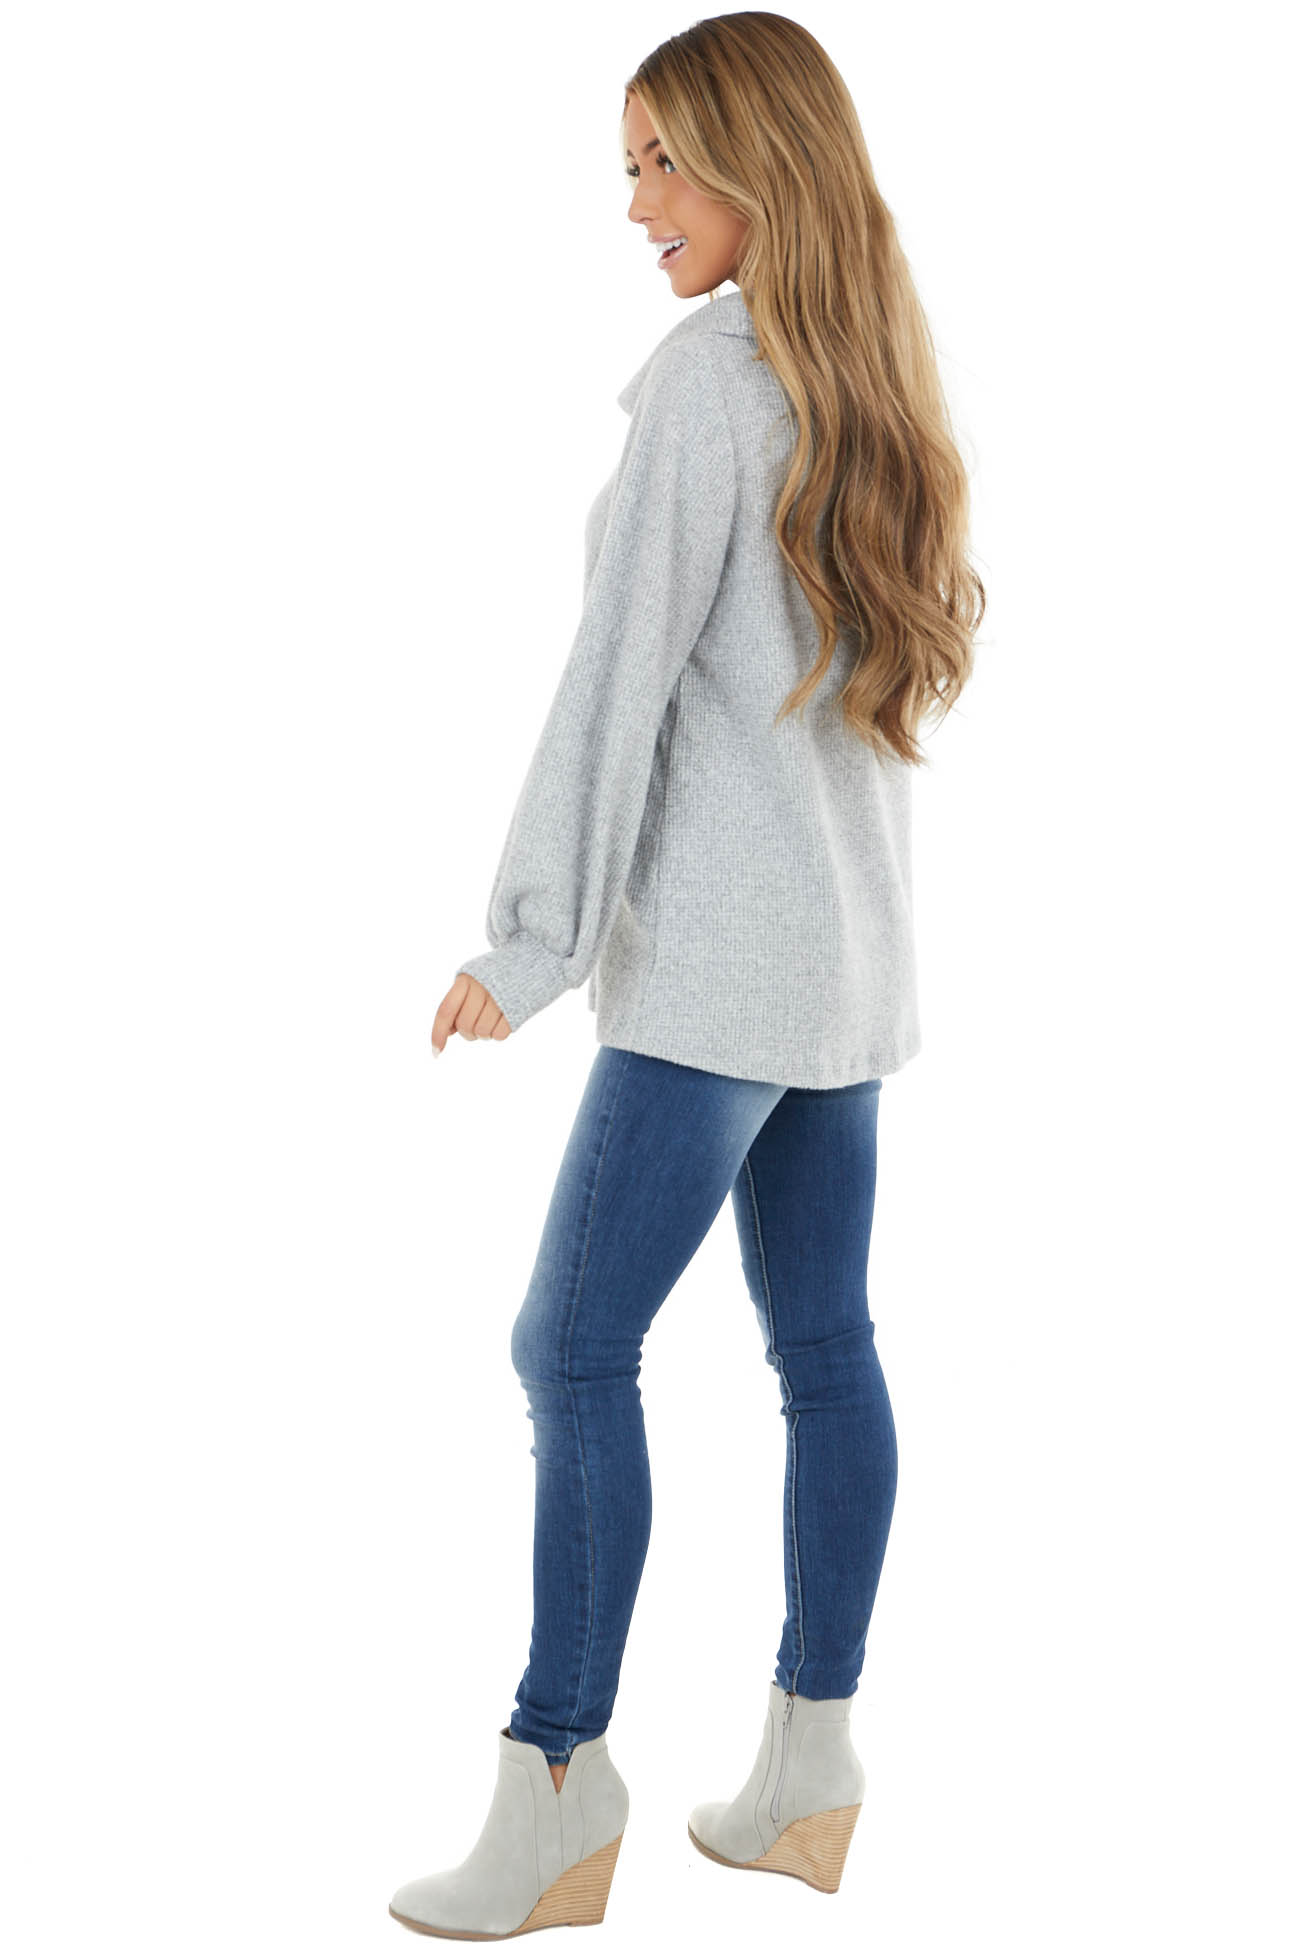 Heather Grey Long Sleeve Thermal Knit Top with Cowl Neck